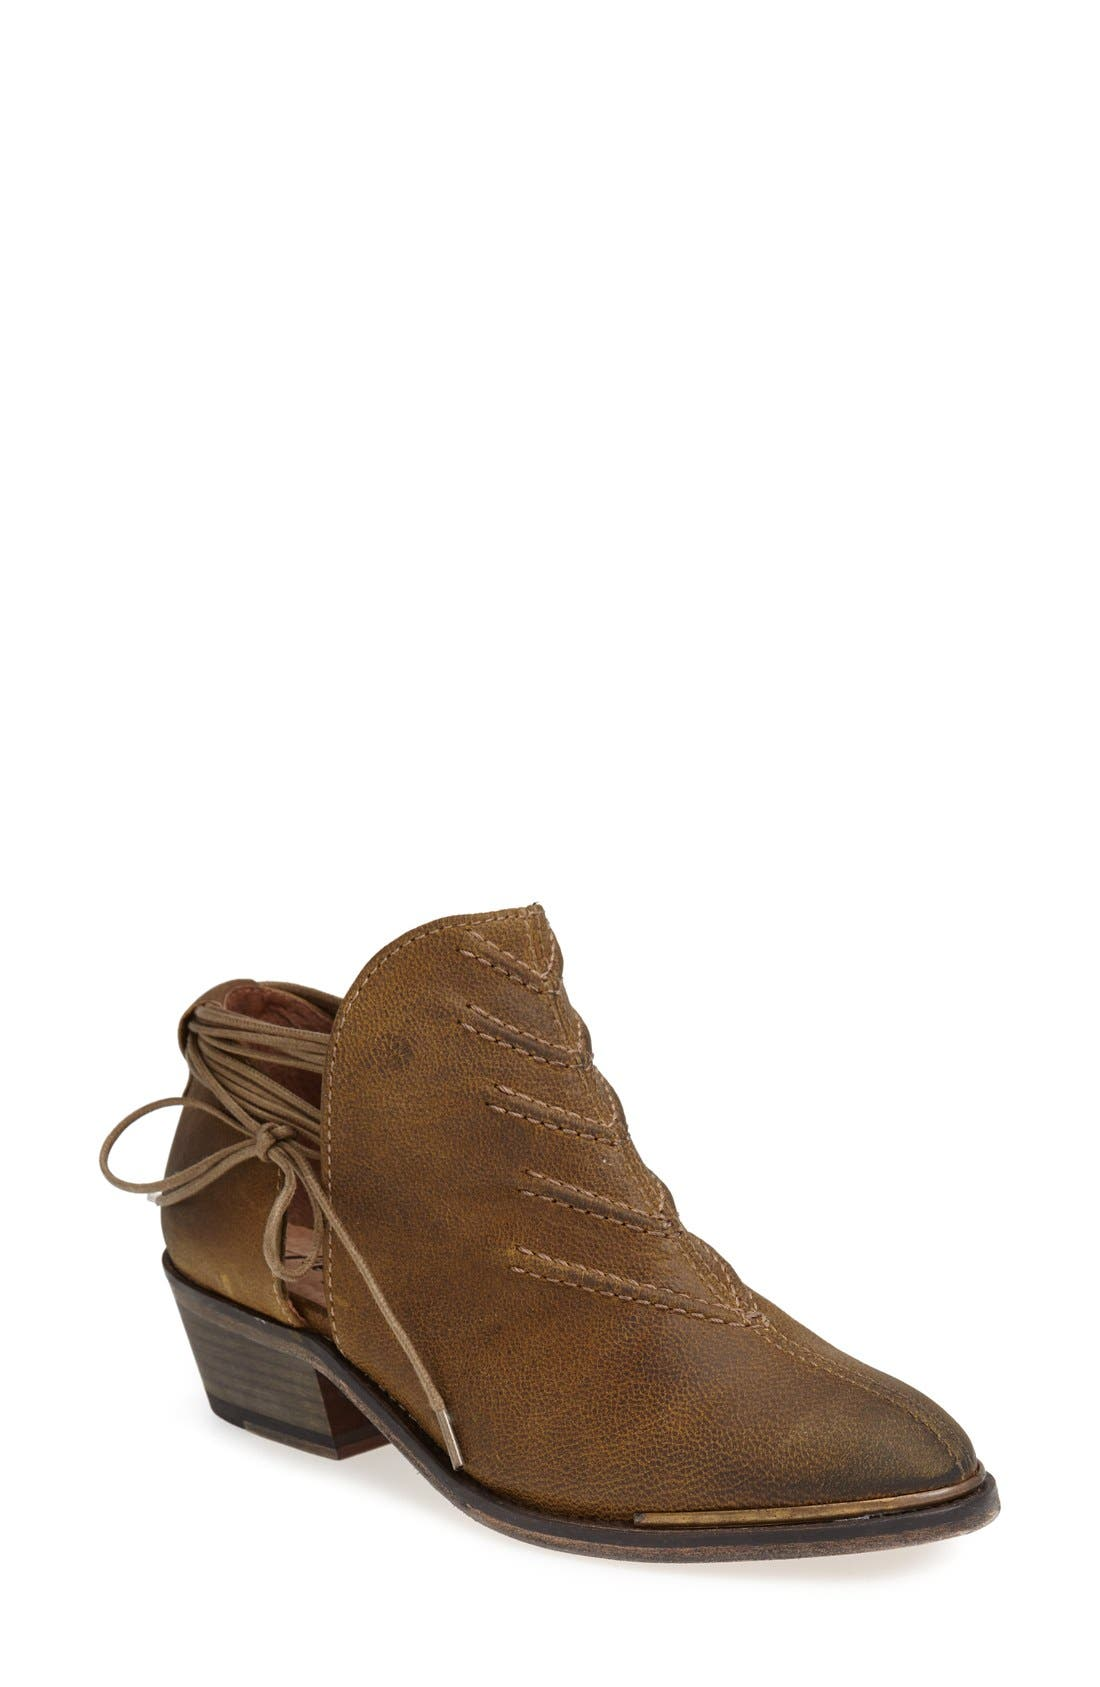 Alternate Image 1 Selected - Free People 'Southern Cross' Bootie (Women)